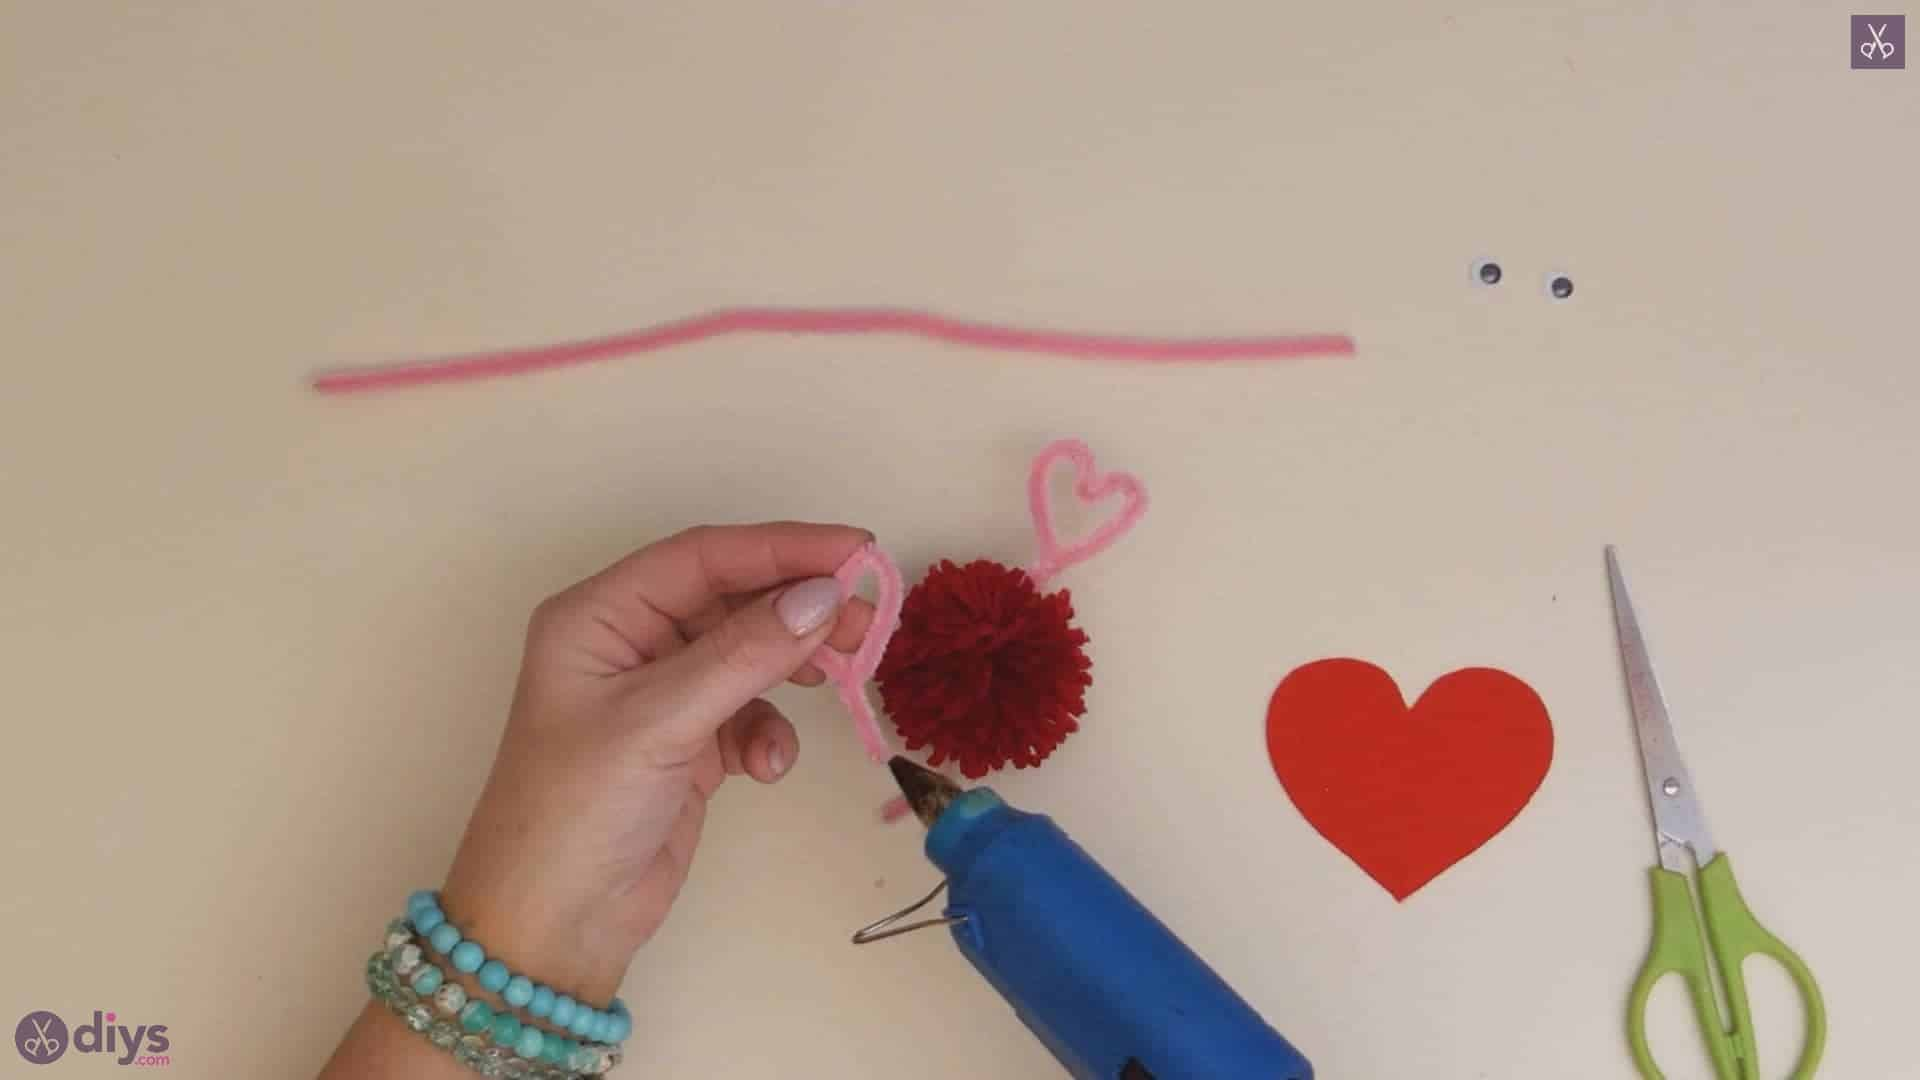 Diy pom pom love monster step 4c